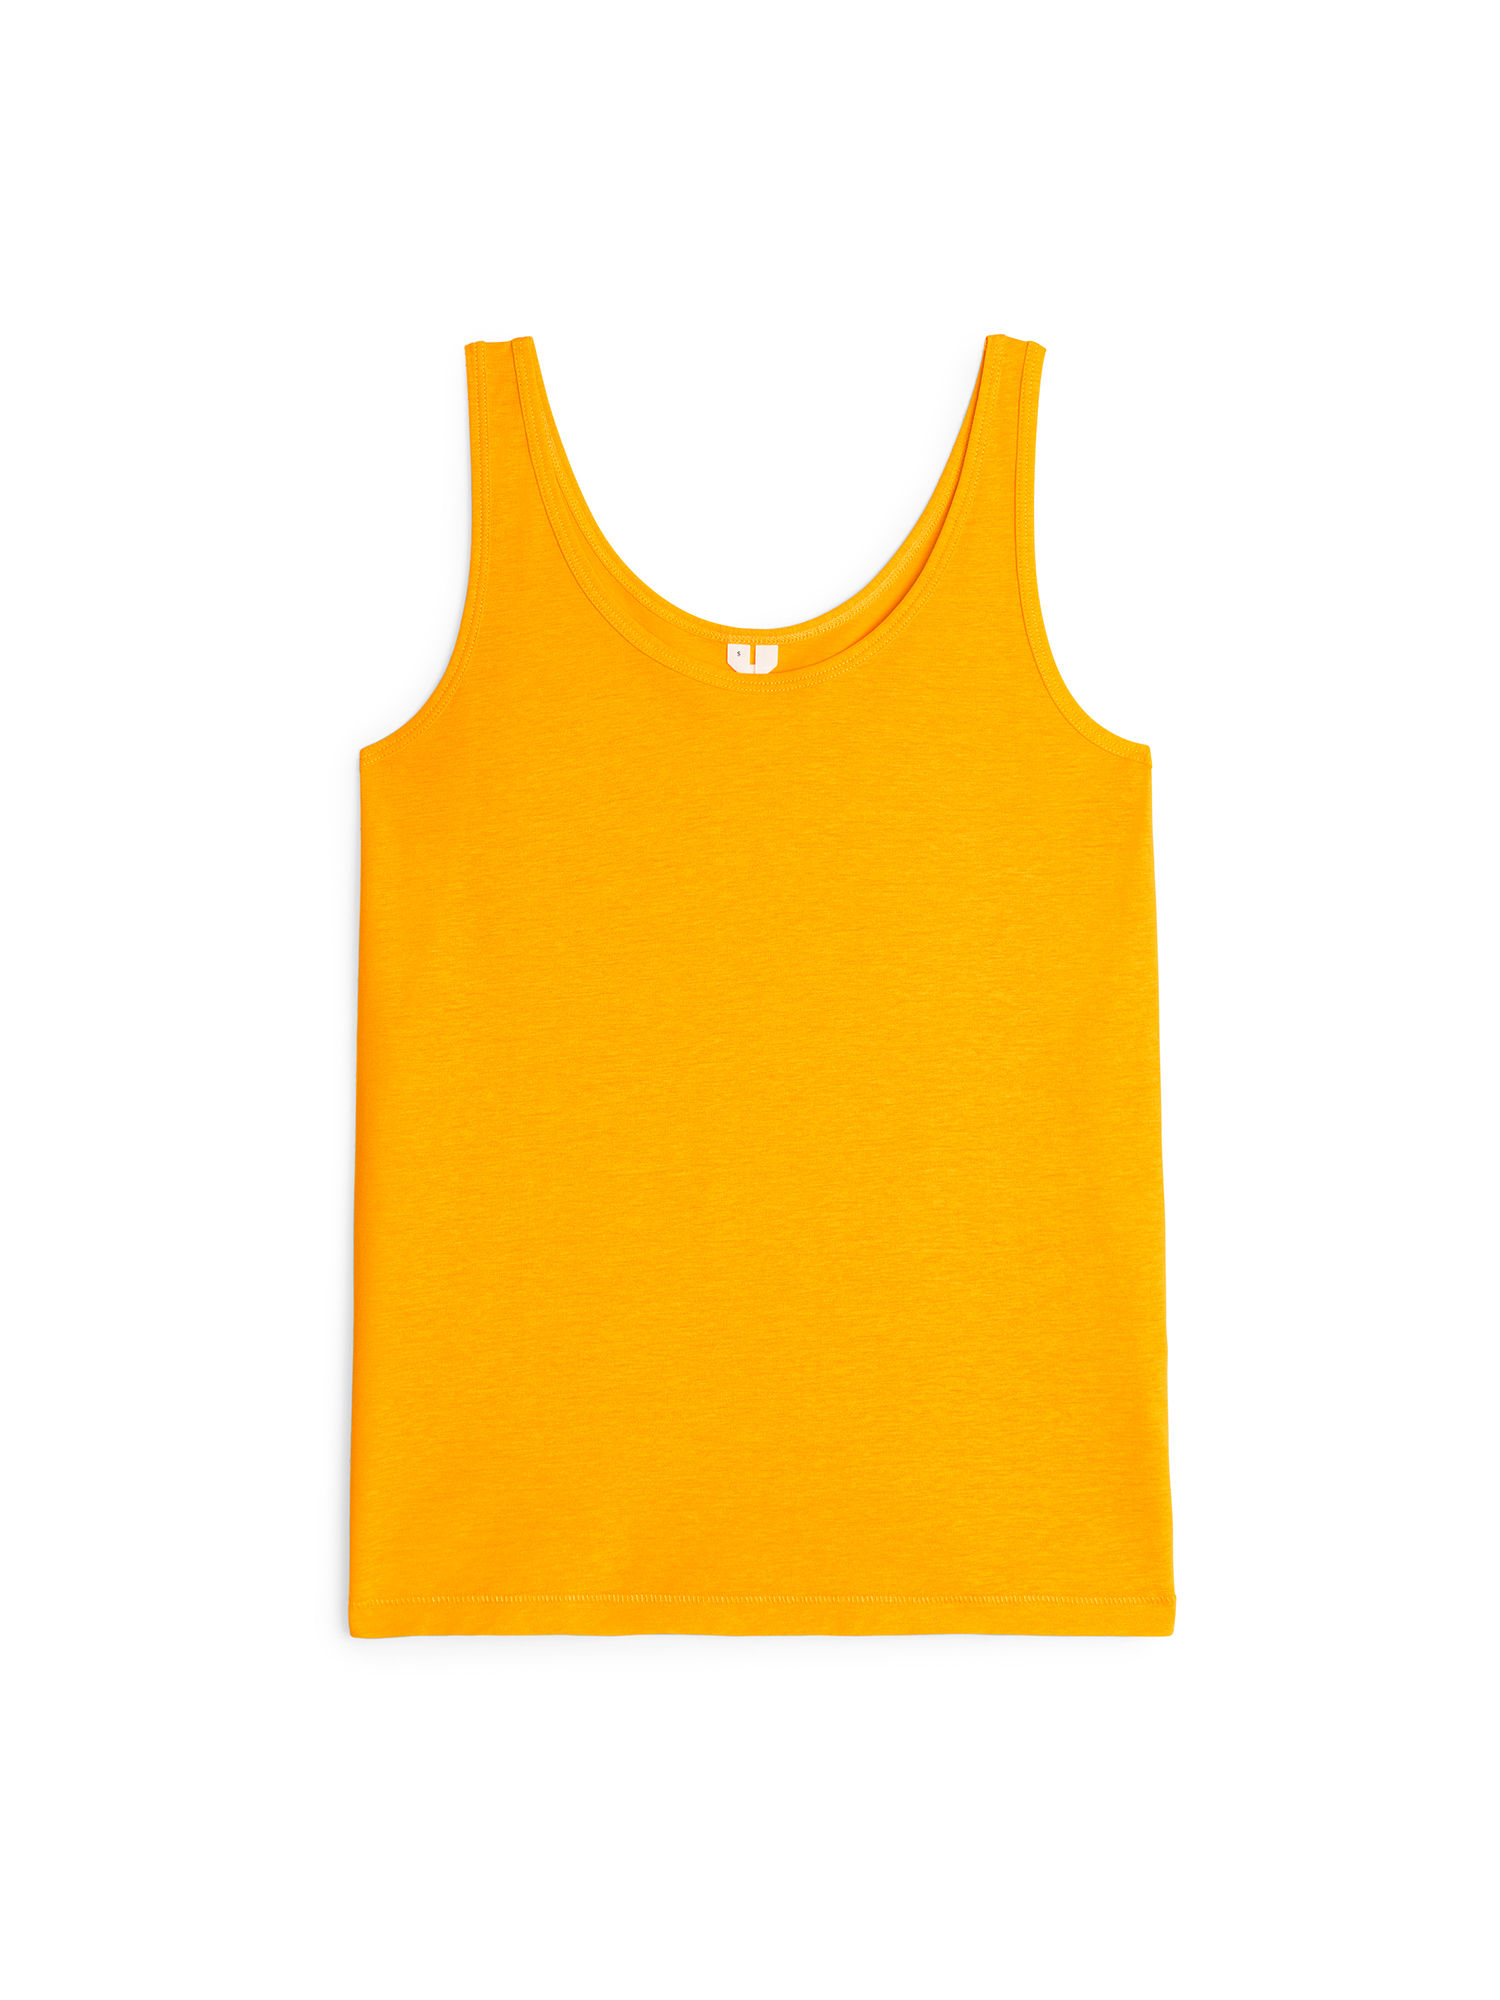 Fabric Swatch image of Arket pima cotton tank top in yellow